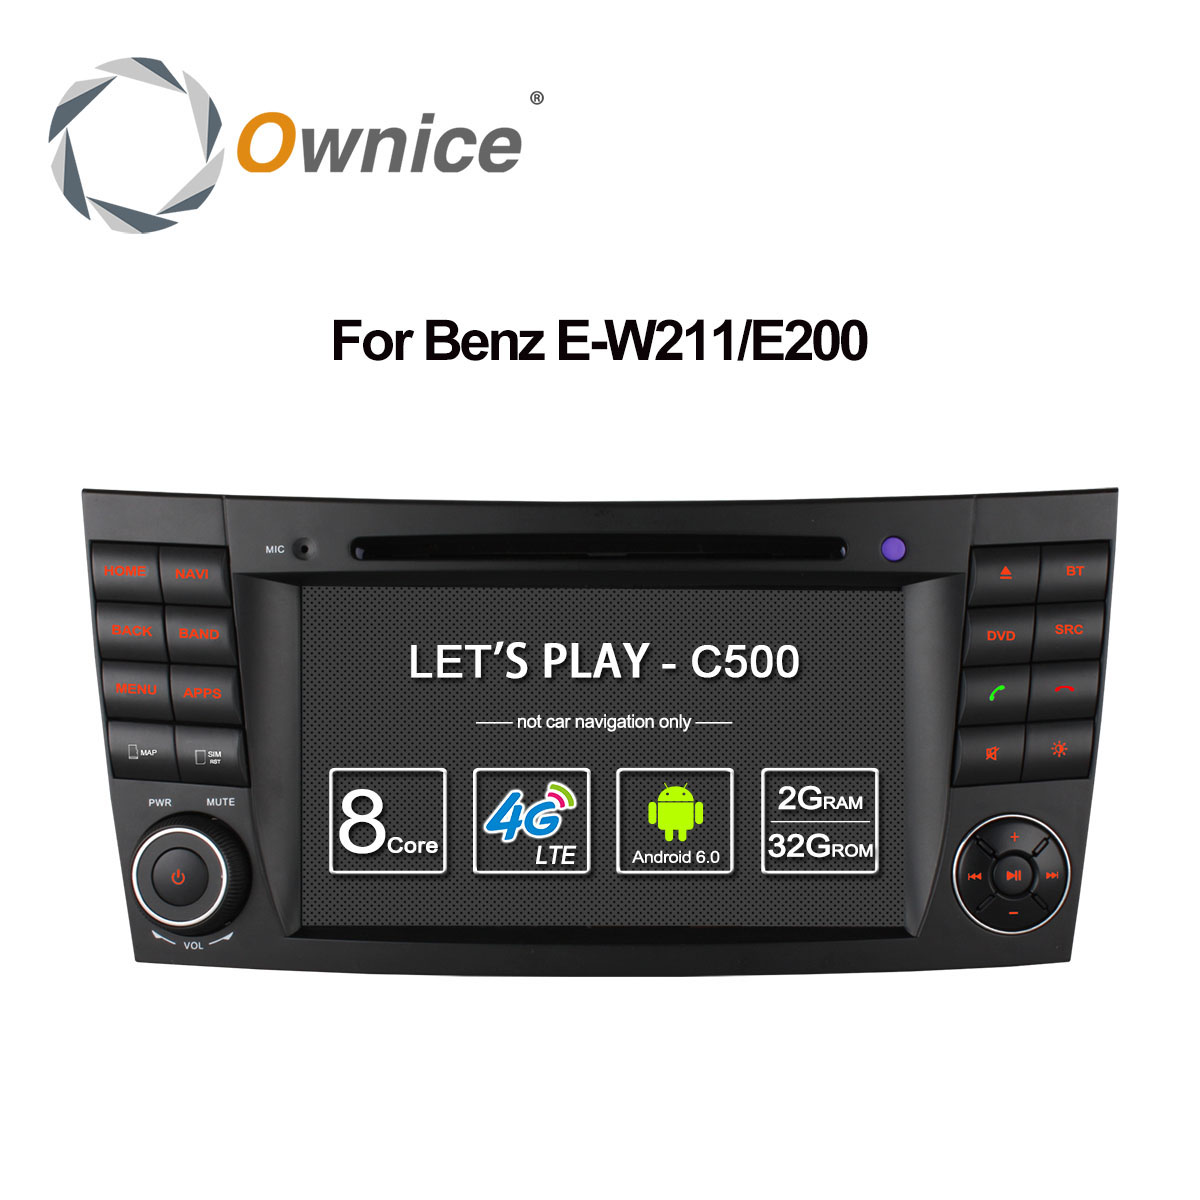 4G SIM LTE Android 6.0 Octa 8 Core 1024*600 Car DVD Player for <font><b>Mercedes</b></font> E Class <font><b>W211</b></font> W209 W219 WIFI Radio <font><b>GPS</b></font> 2GB RAM 32GB ROM image